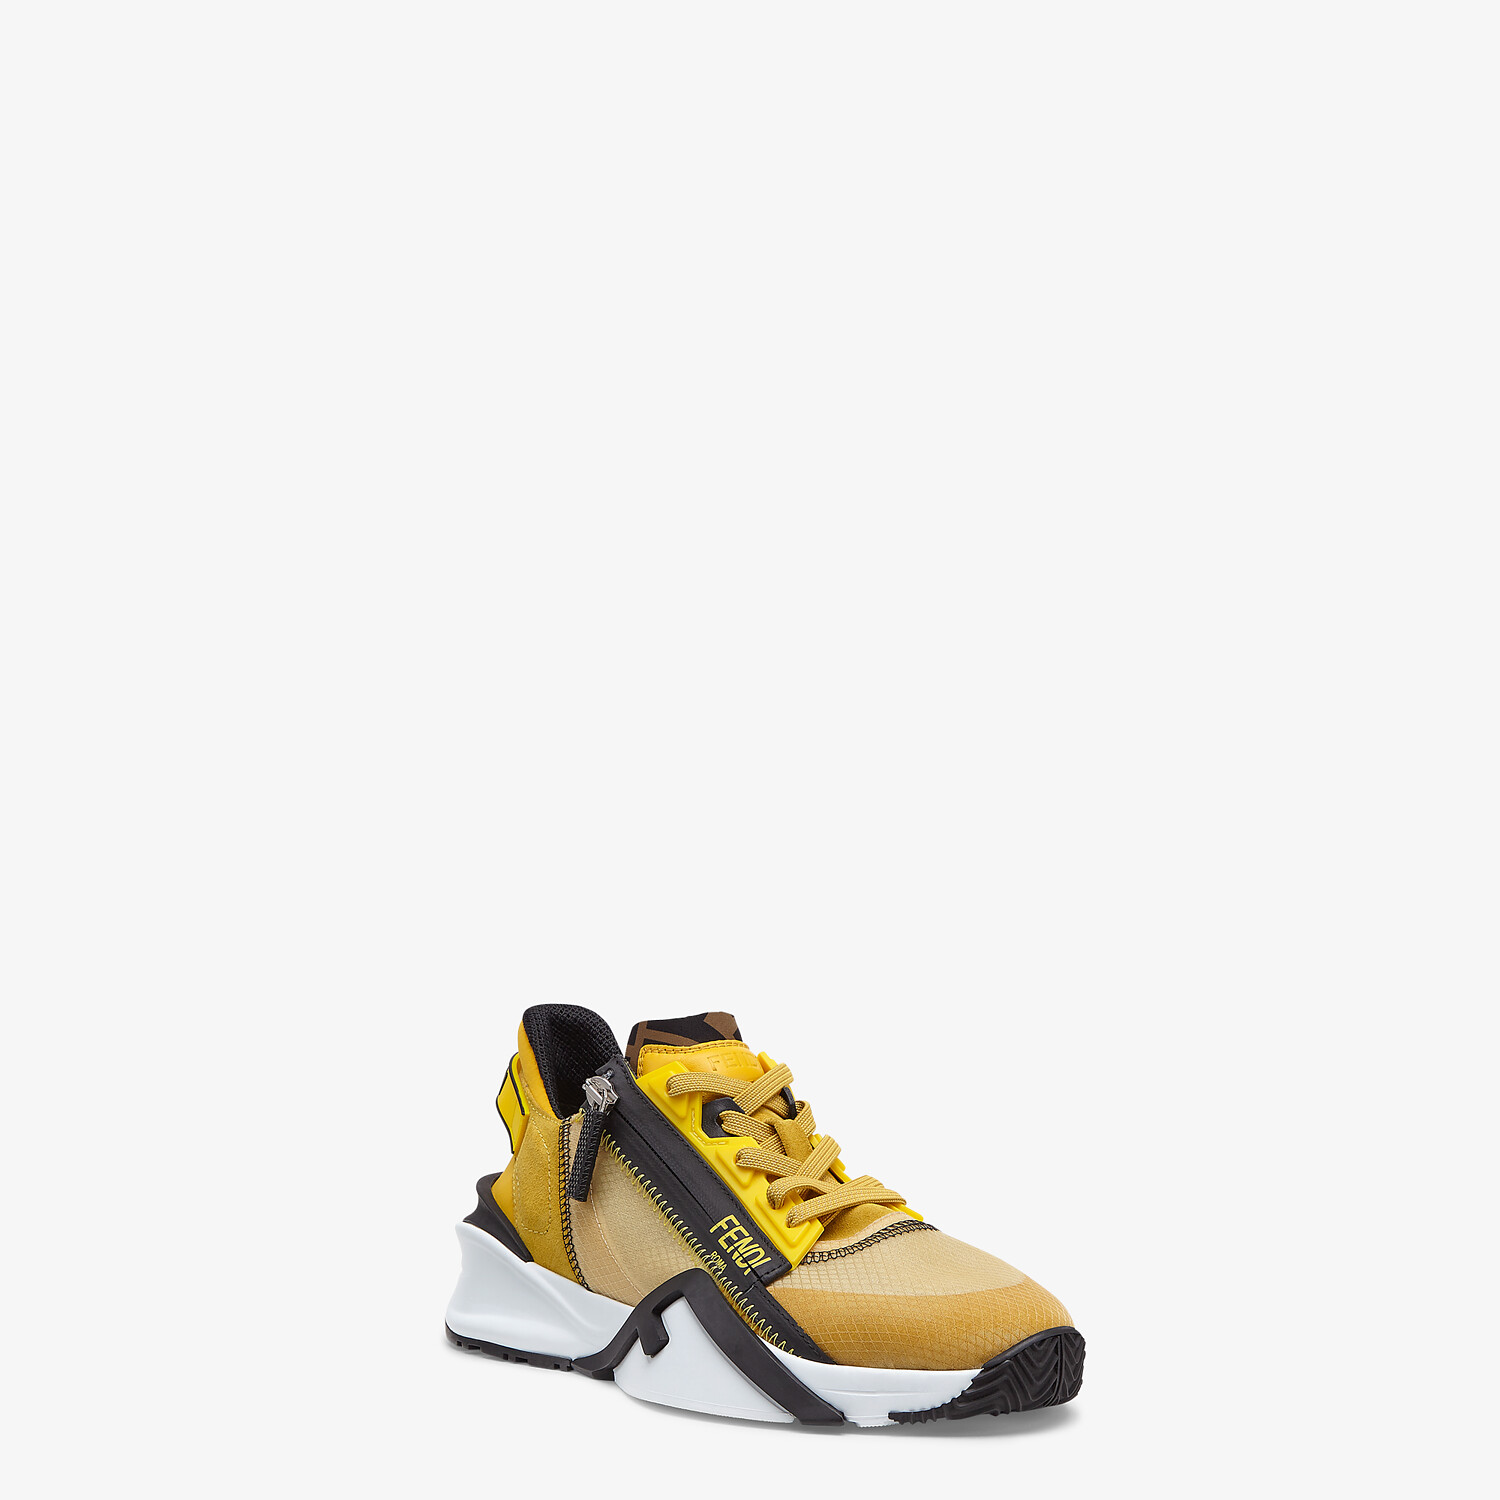 FENDI FENDI FLOW - Low-tops in yellow nylon and suede - view 2 detail